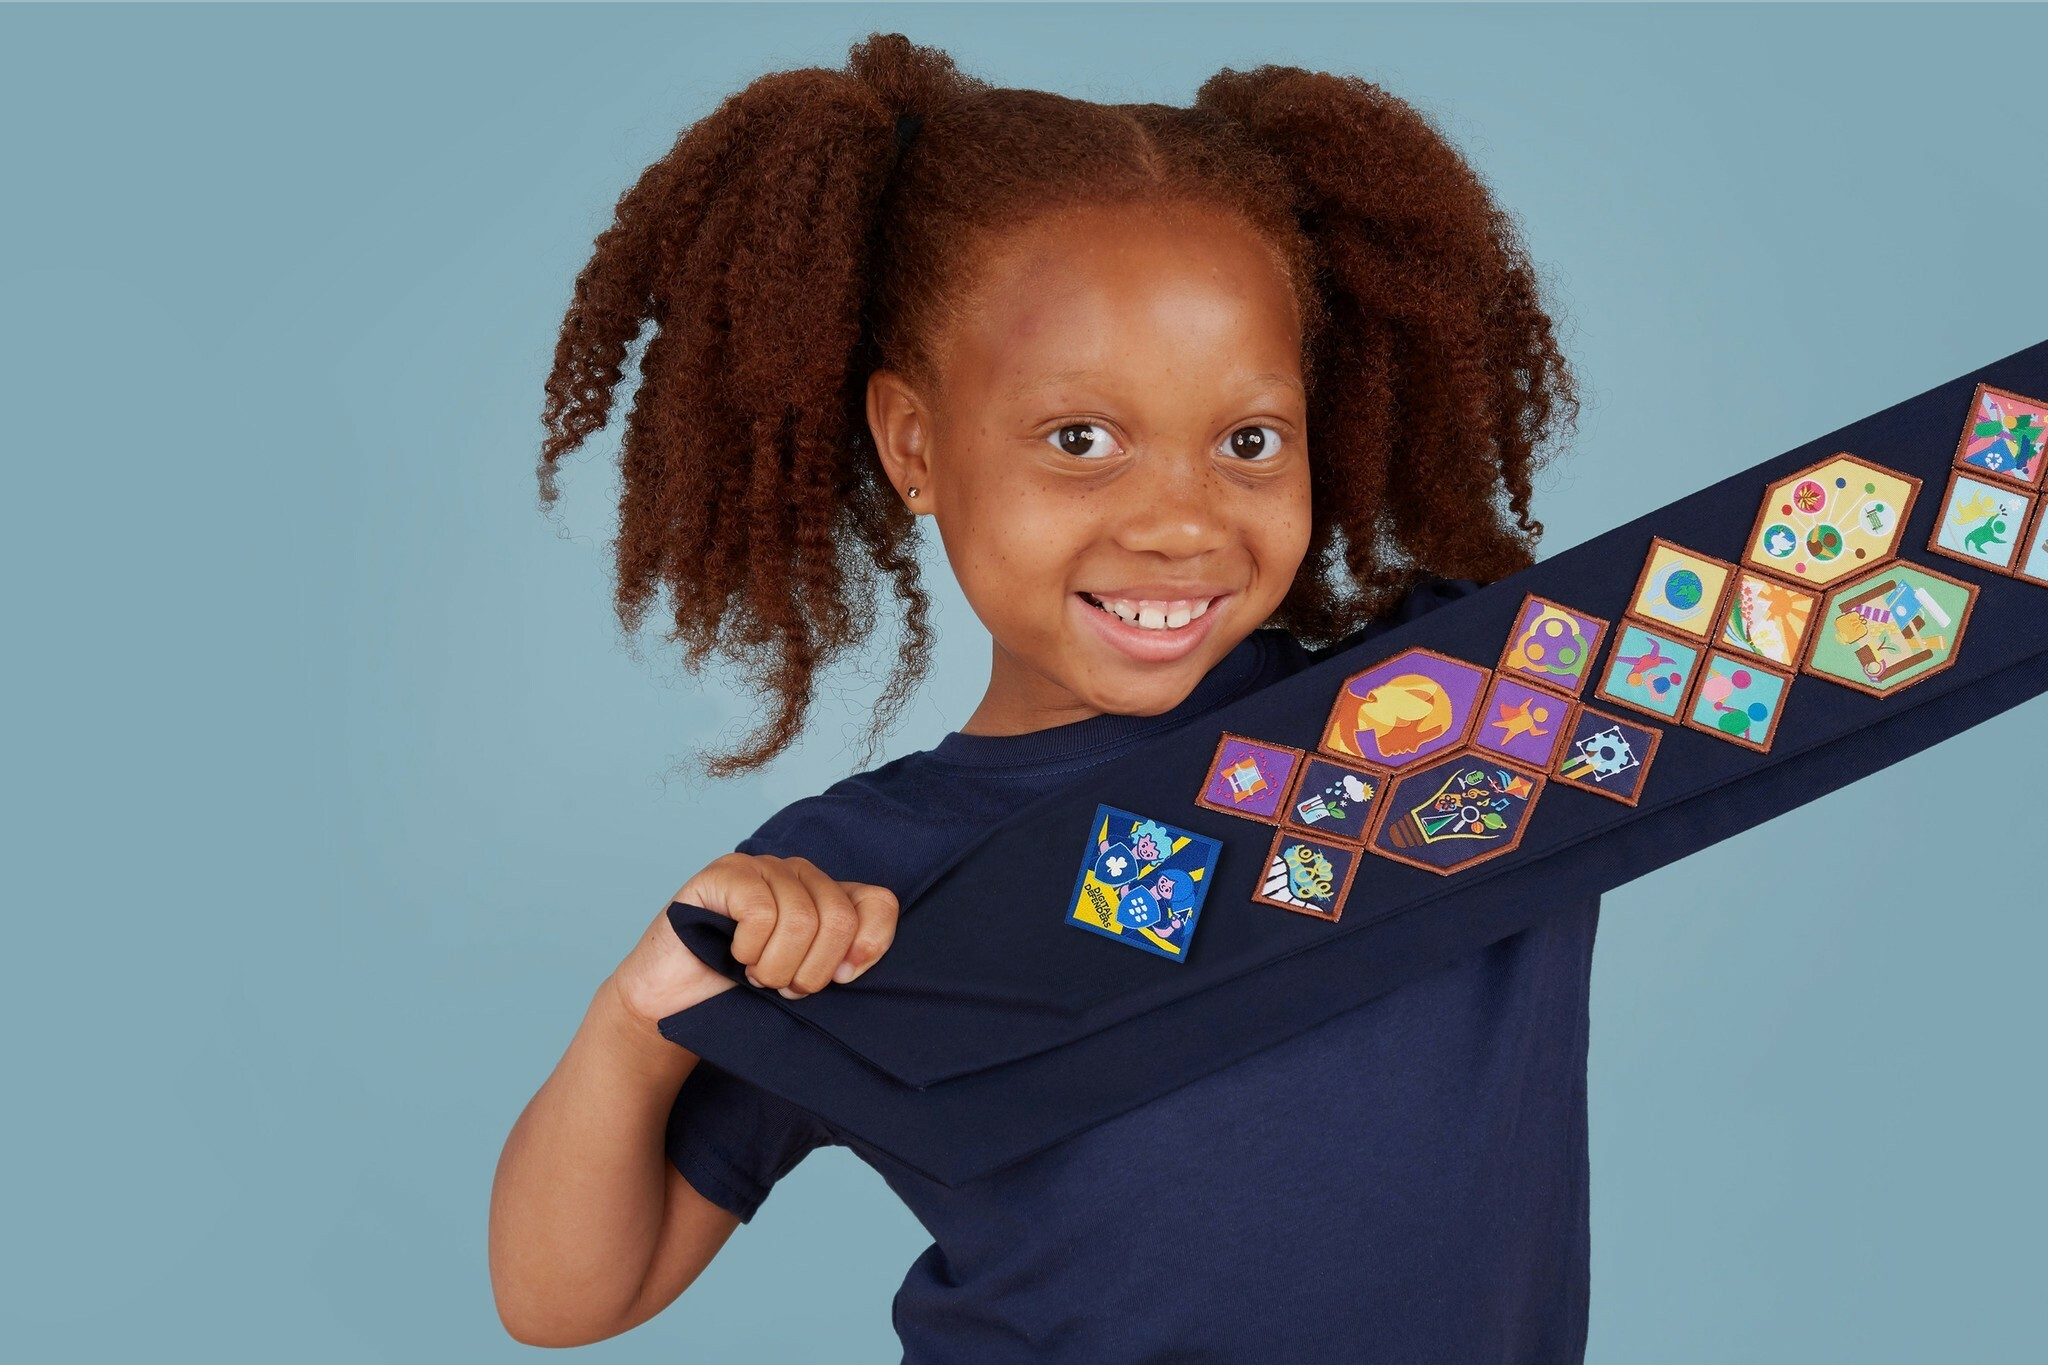 Guide showing off her Girl Guides badges